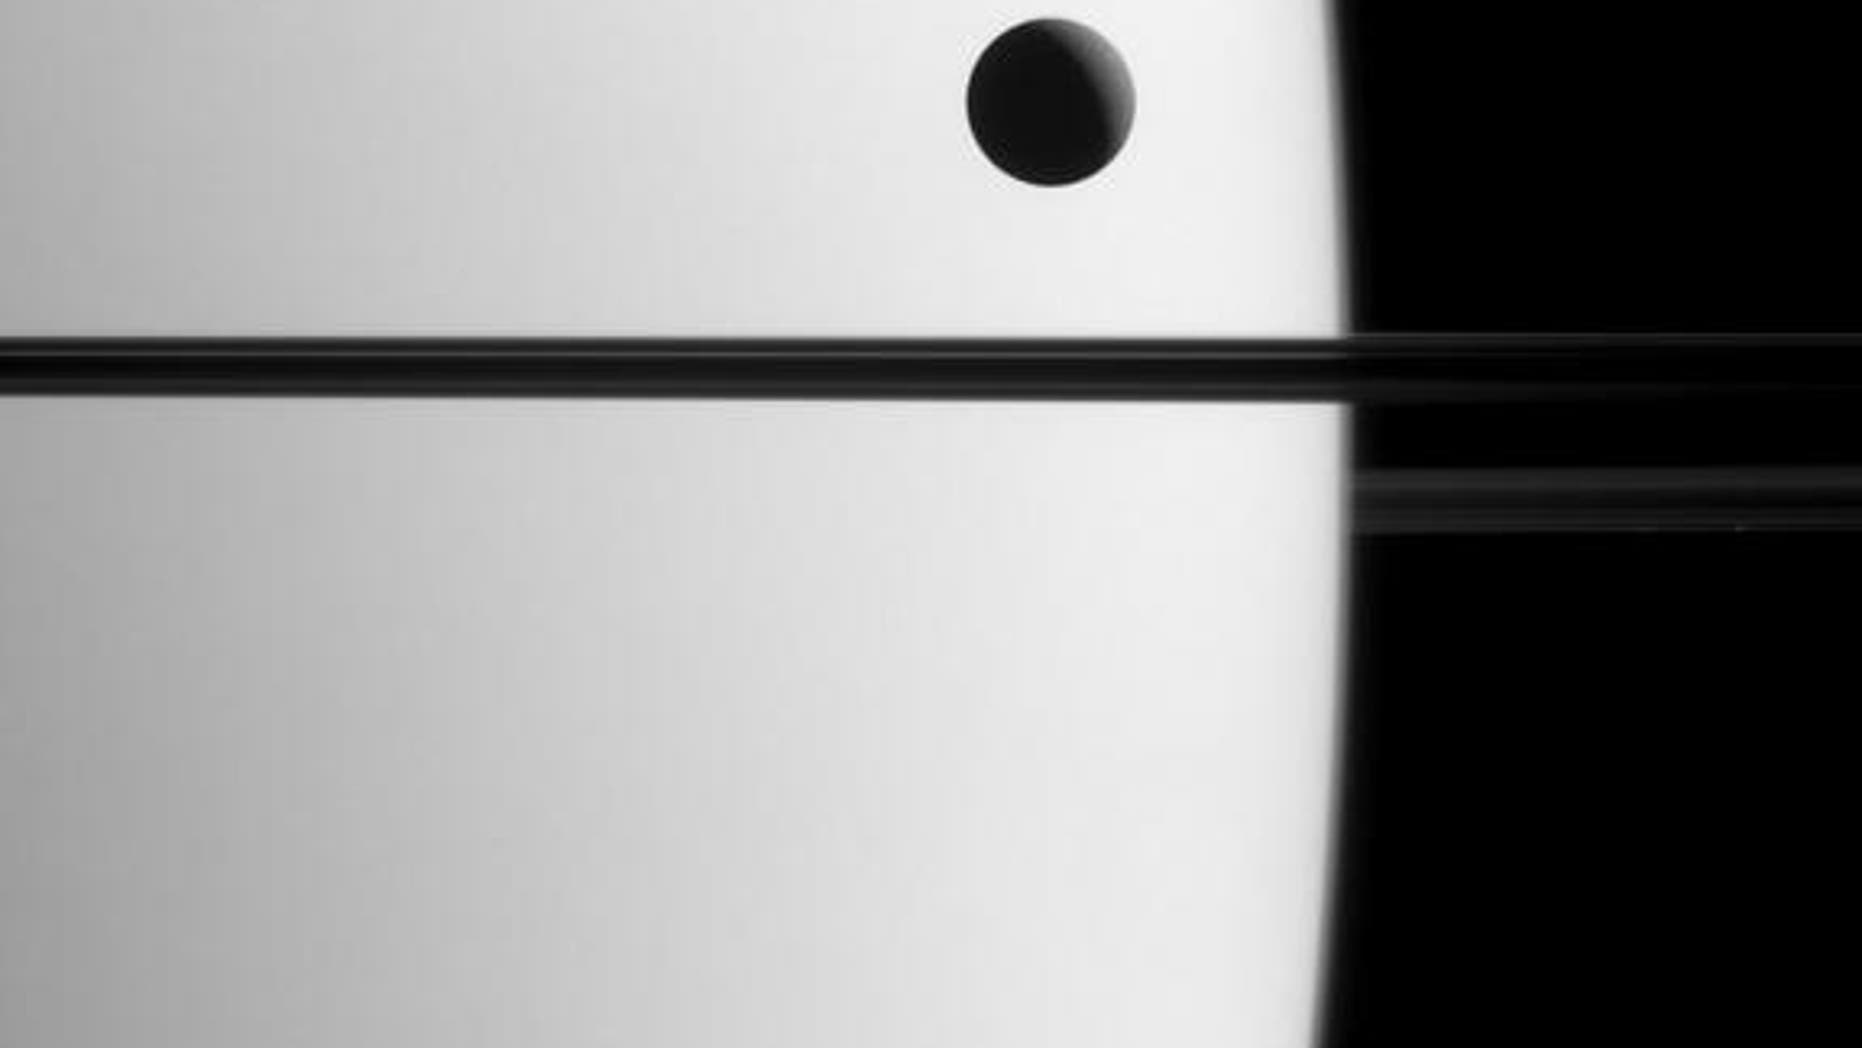 Saturn's moon Dione crosses the face of the ringed planet in an image obtained on May 21, 2015.